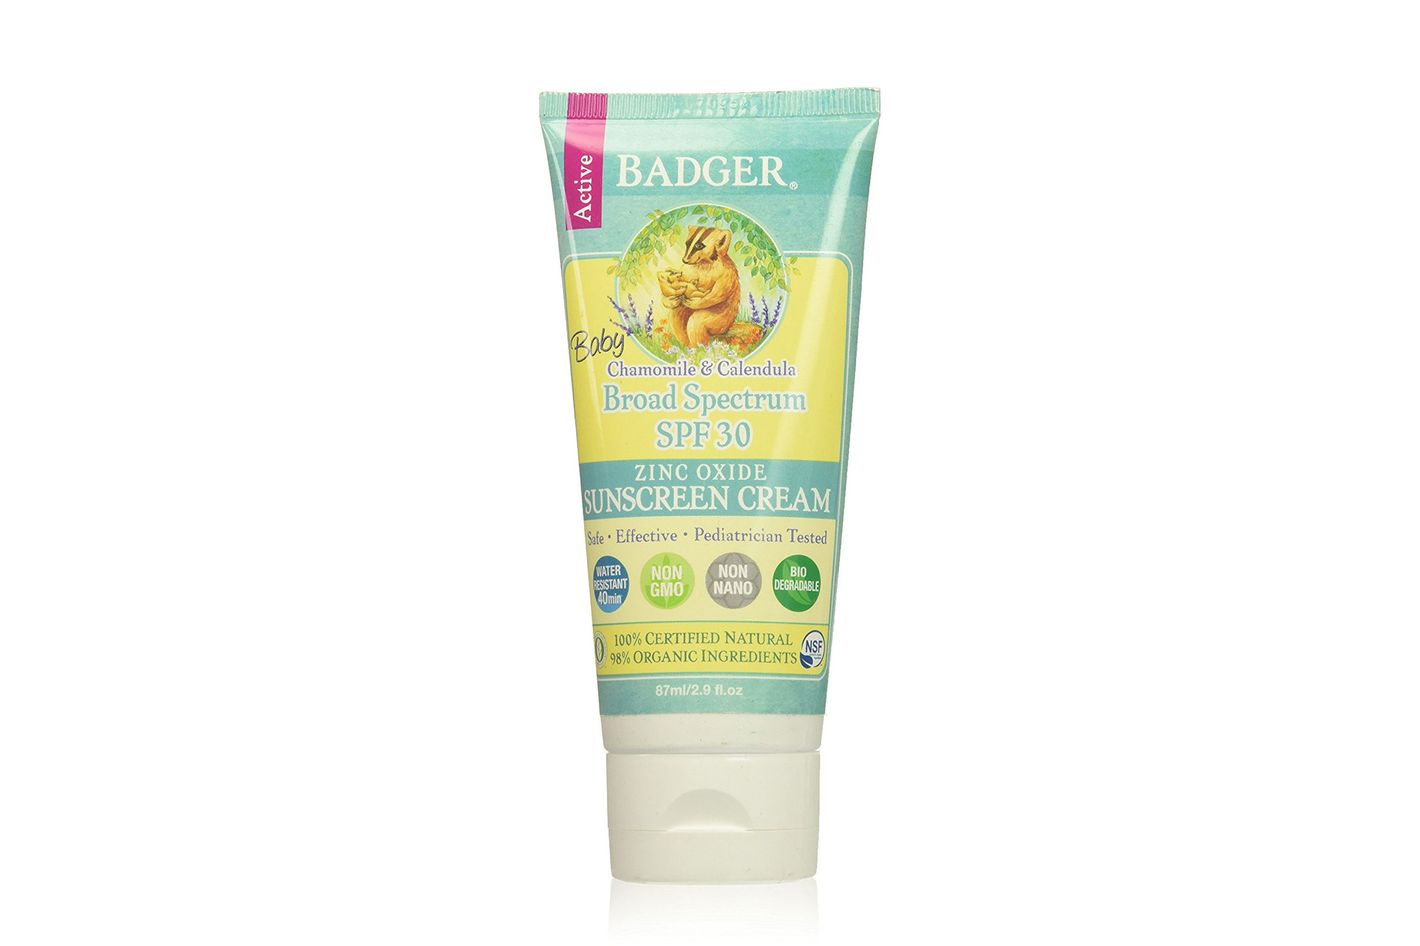 Badger Baby Broad Spectrum SPF 30 Sunscreen